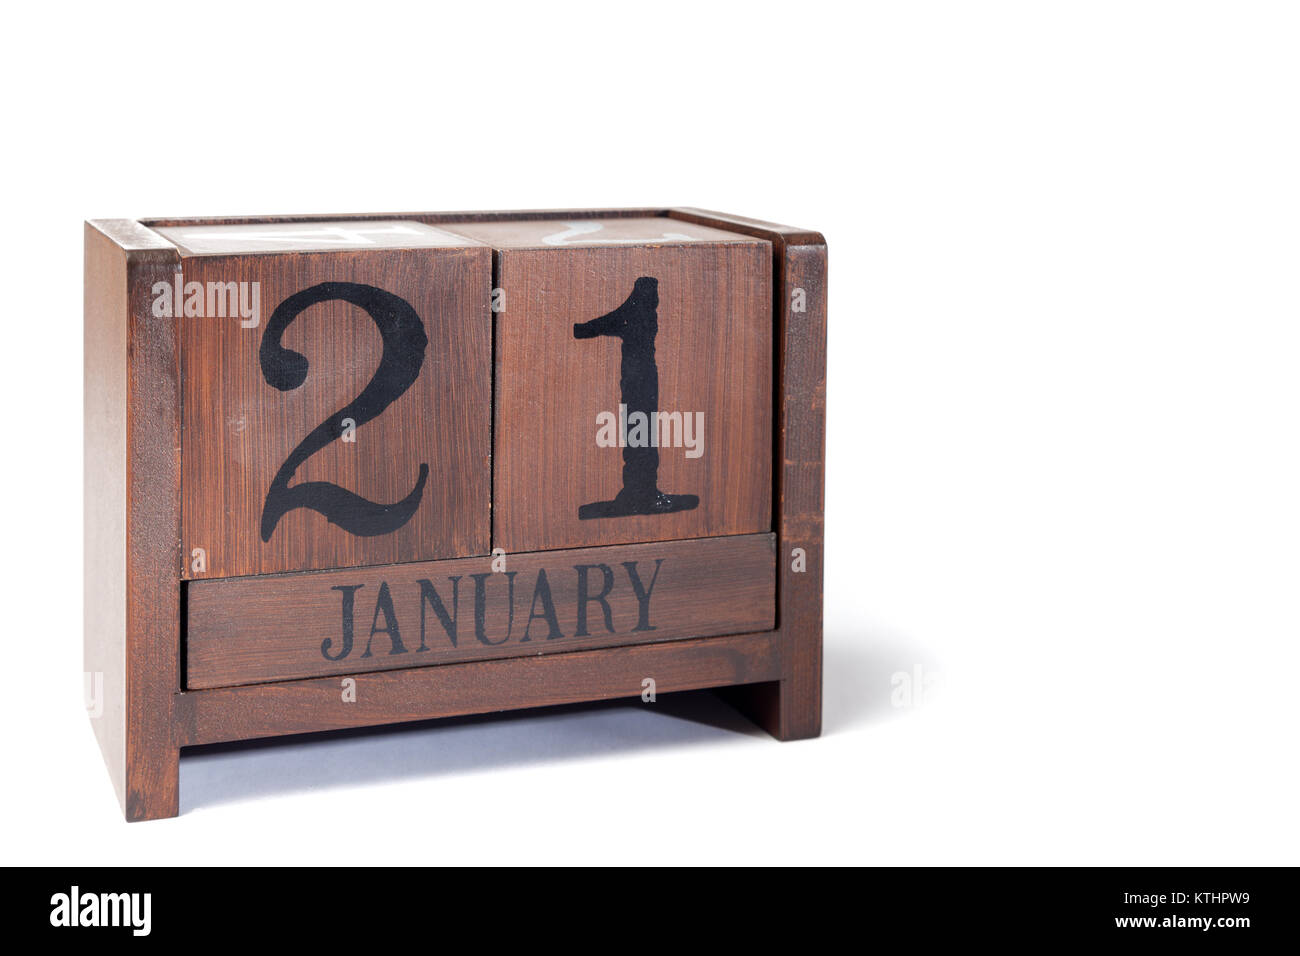 Wooden Perpetual Calendar set to January 21st - Stock Image